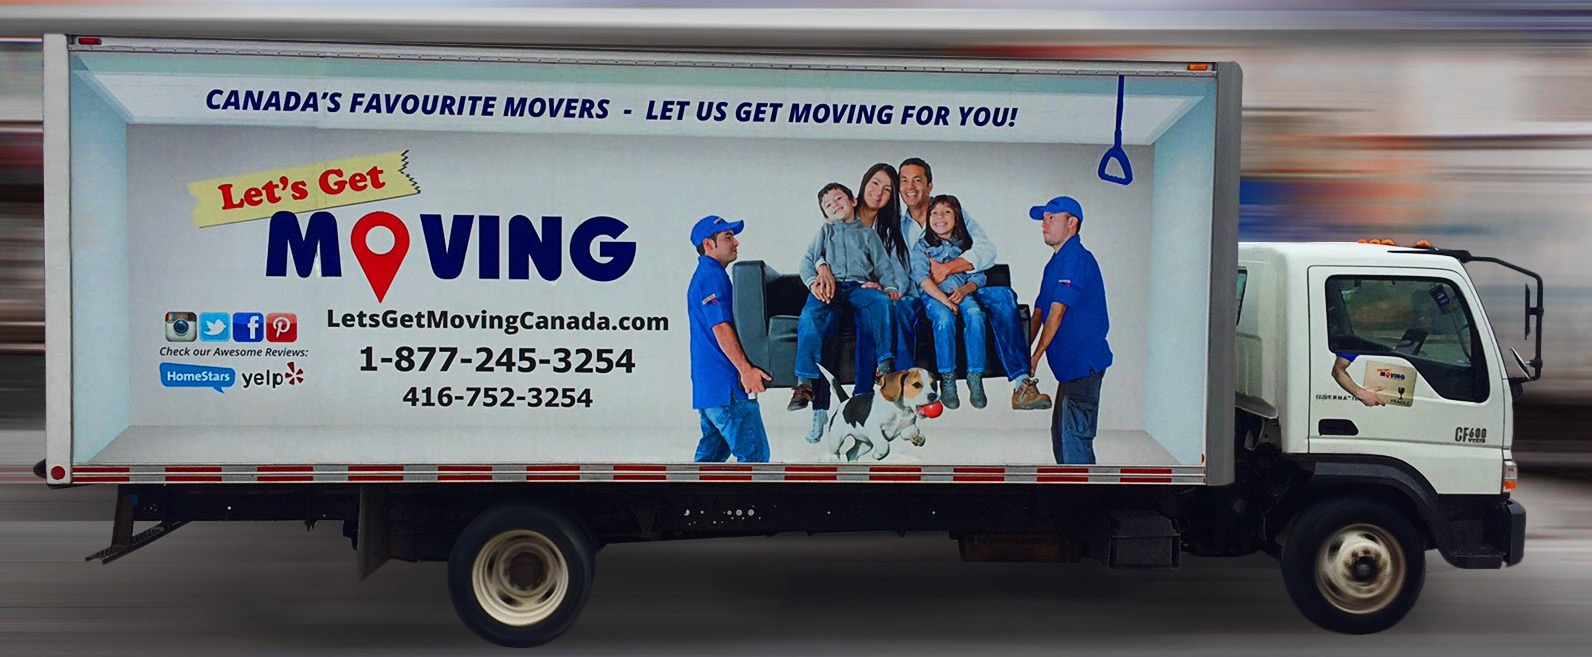 Save friendships and money while moving!